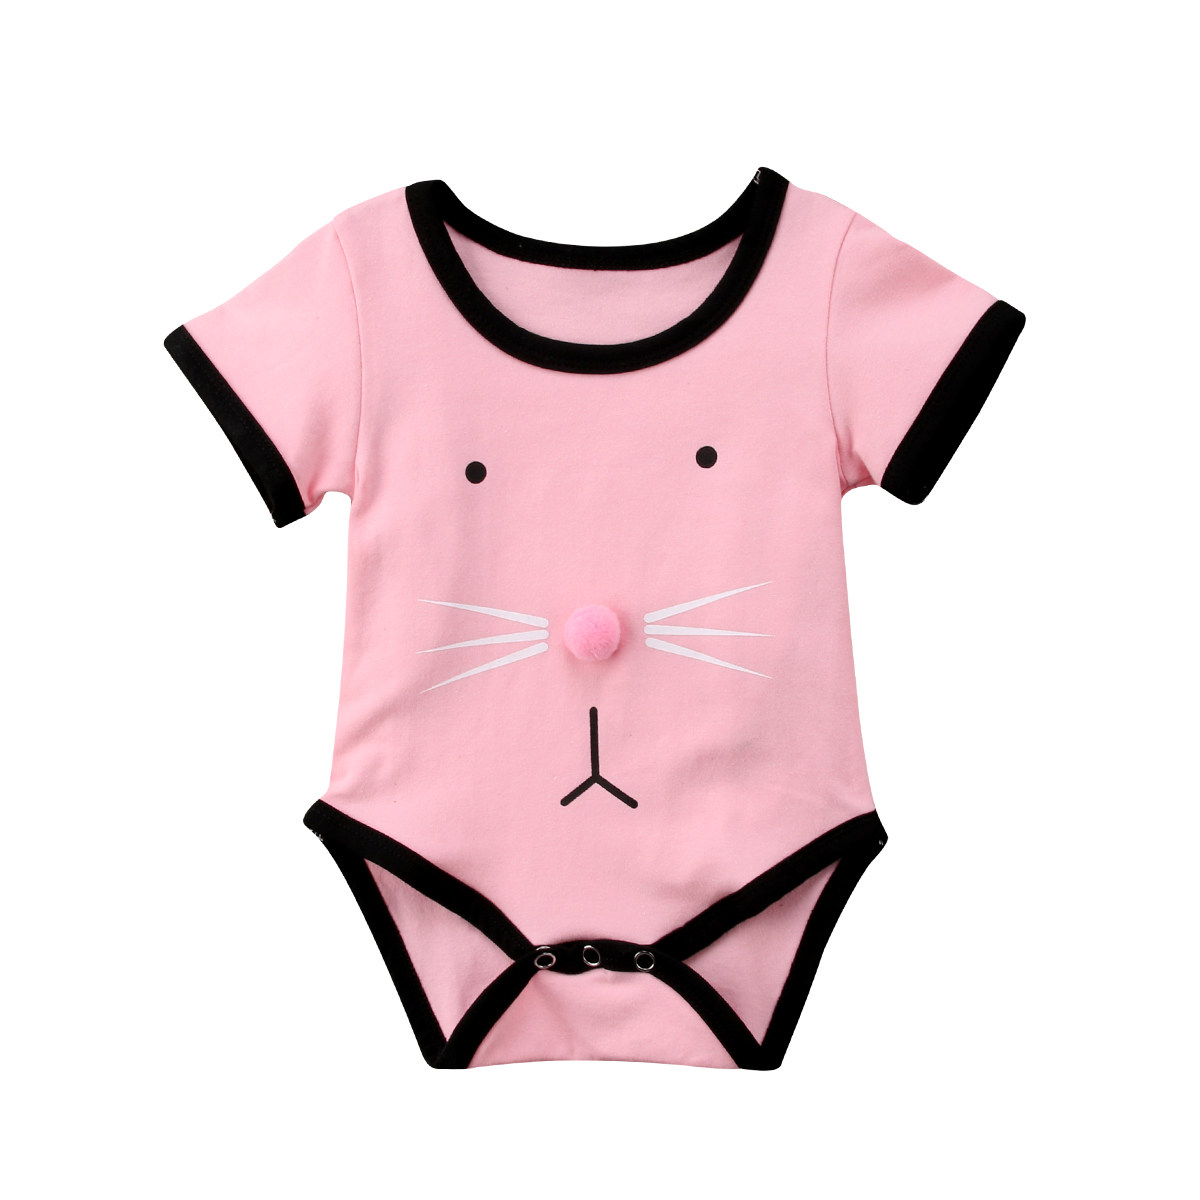 Glorious 2018 Toddler Baby Girls Short Sleeves Pink Jumpsuit Bodysuit Clothes Rabbit Ear Cute Summer Cotton Outfits Bodysuits Girls' Baby Clothing